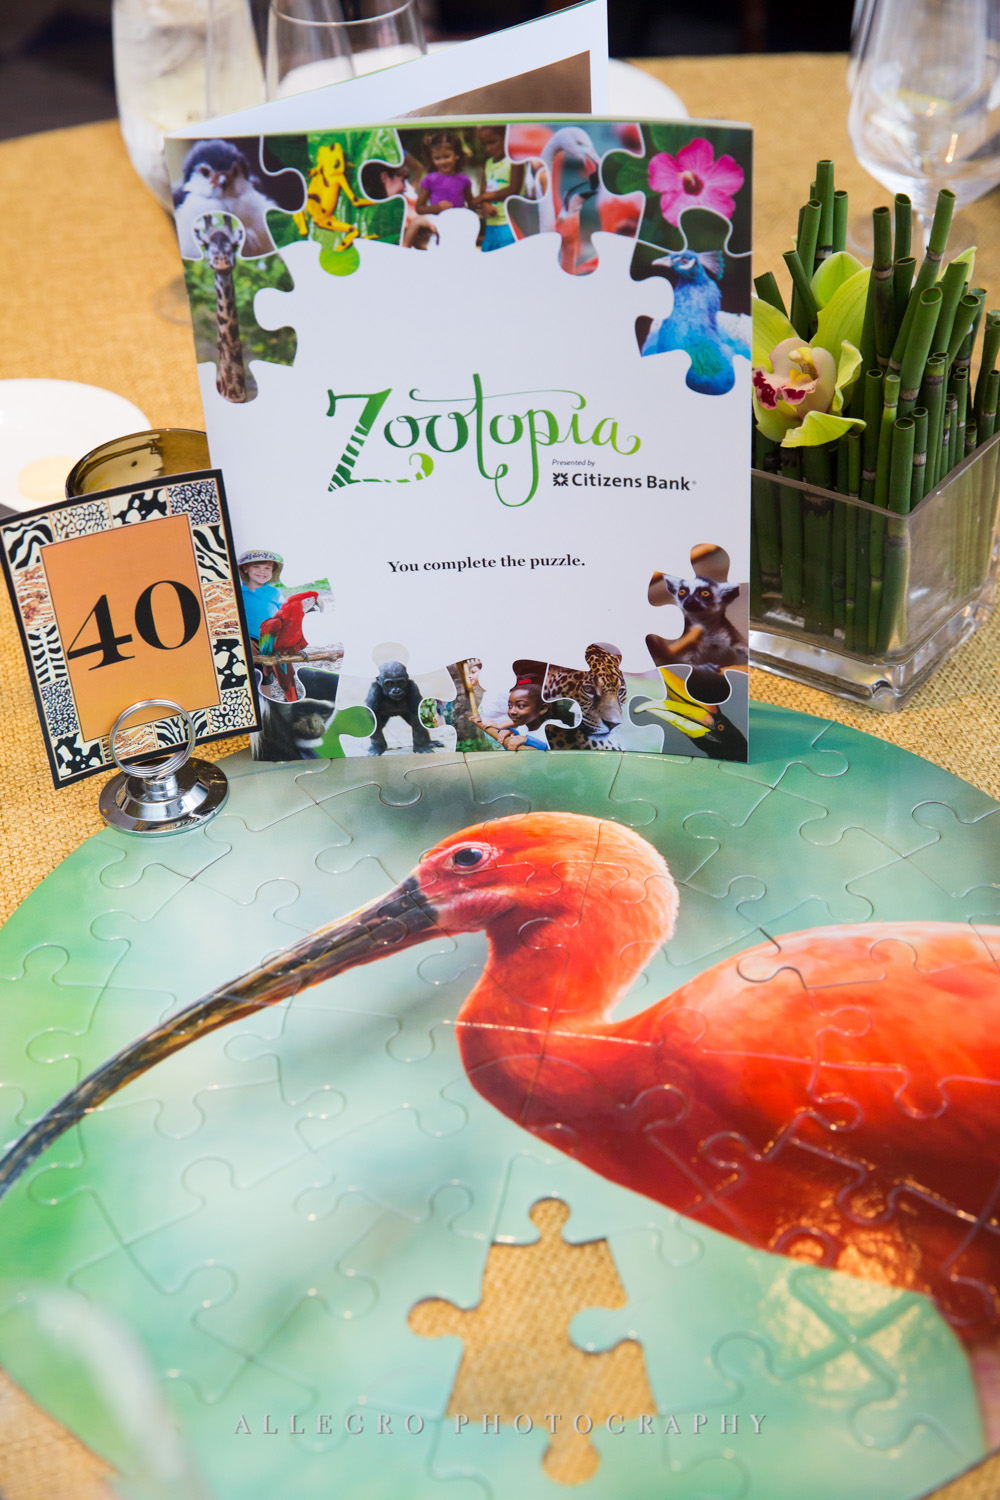 new england zoo event - photographed by allegro photography